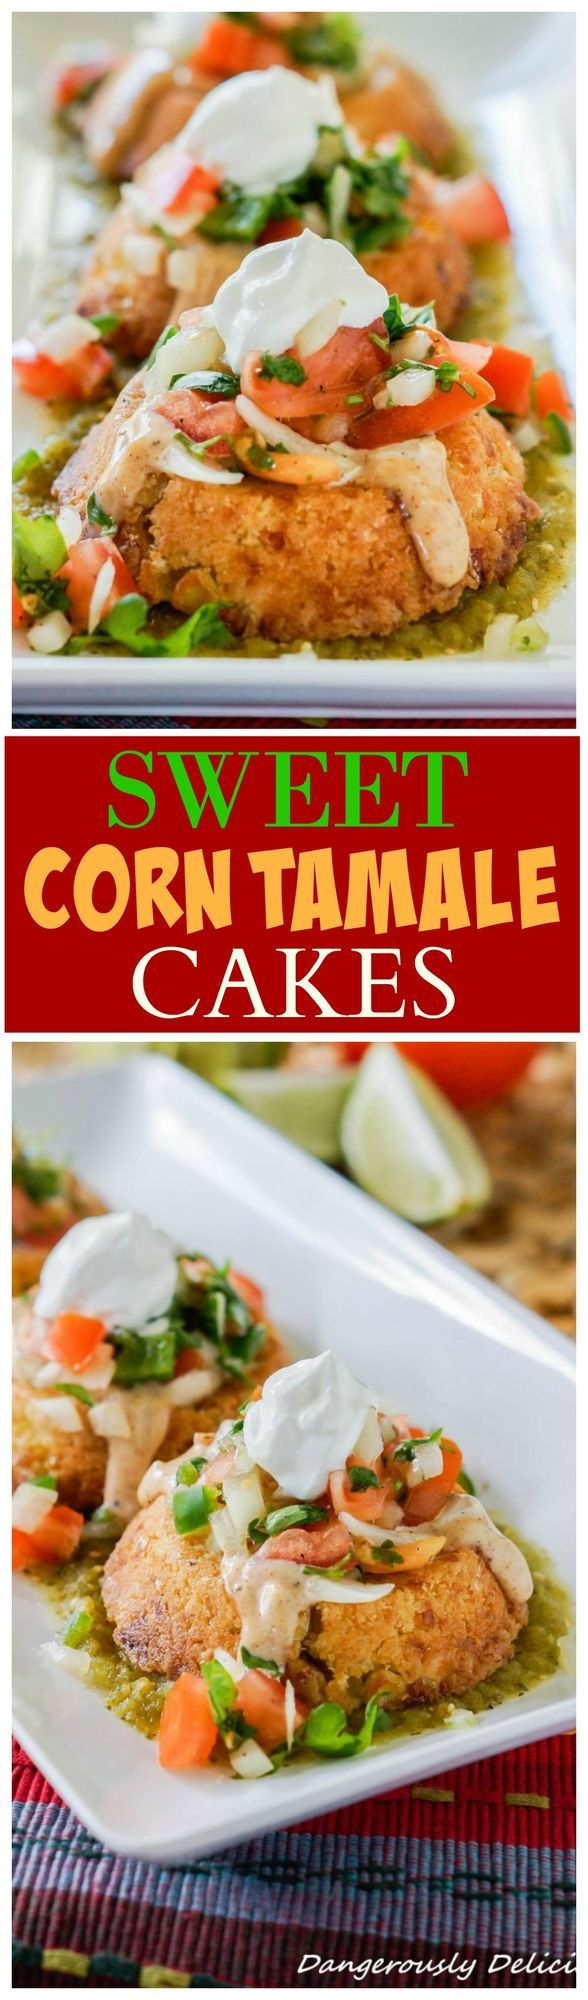 Sweet Corn Tamale Cakes | The Girl Who Ate Everything | Bloglovin'